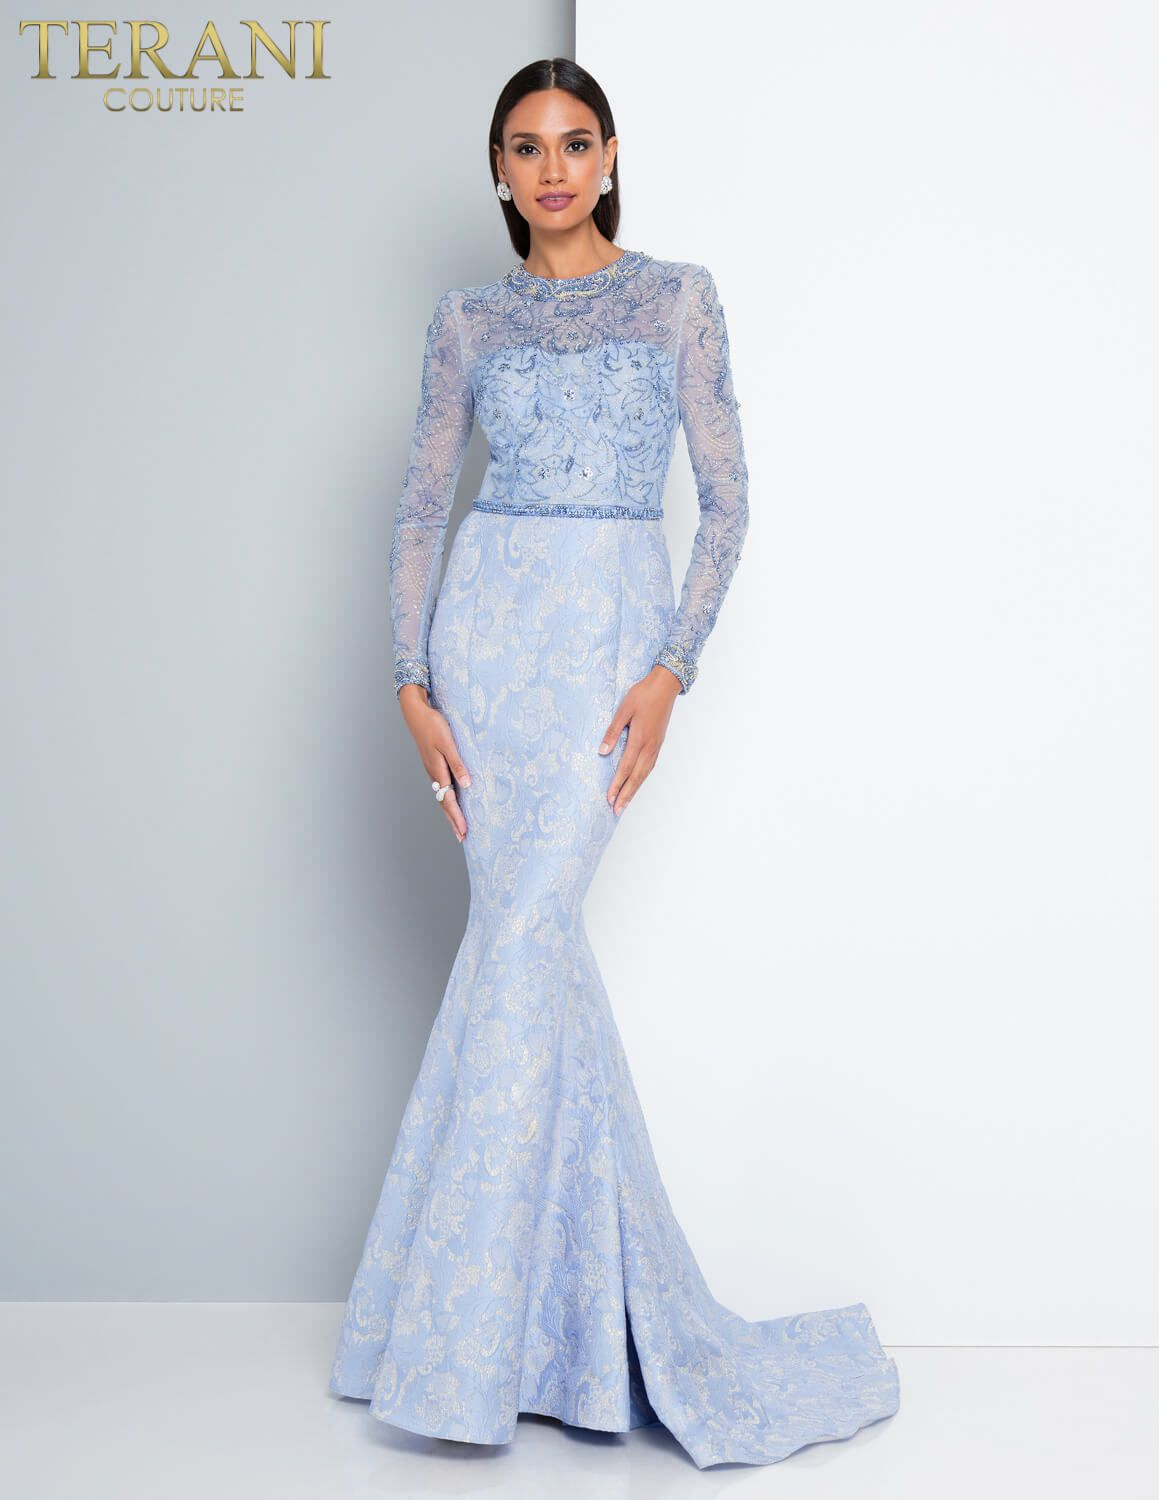 476a7b71709a Terani Couture Long Sleeve Gown - raveitsafe